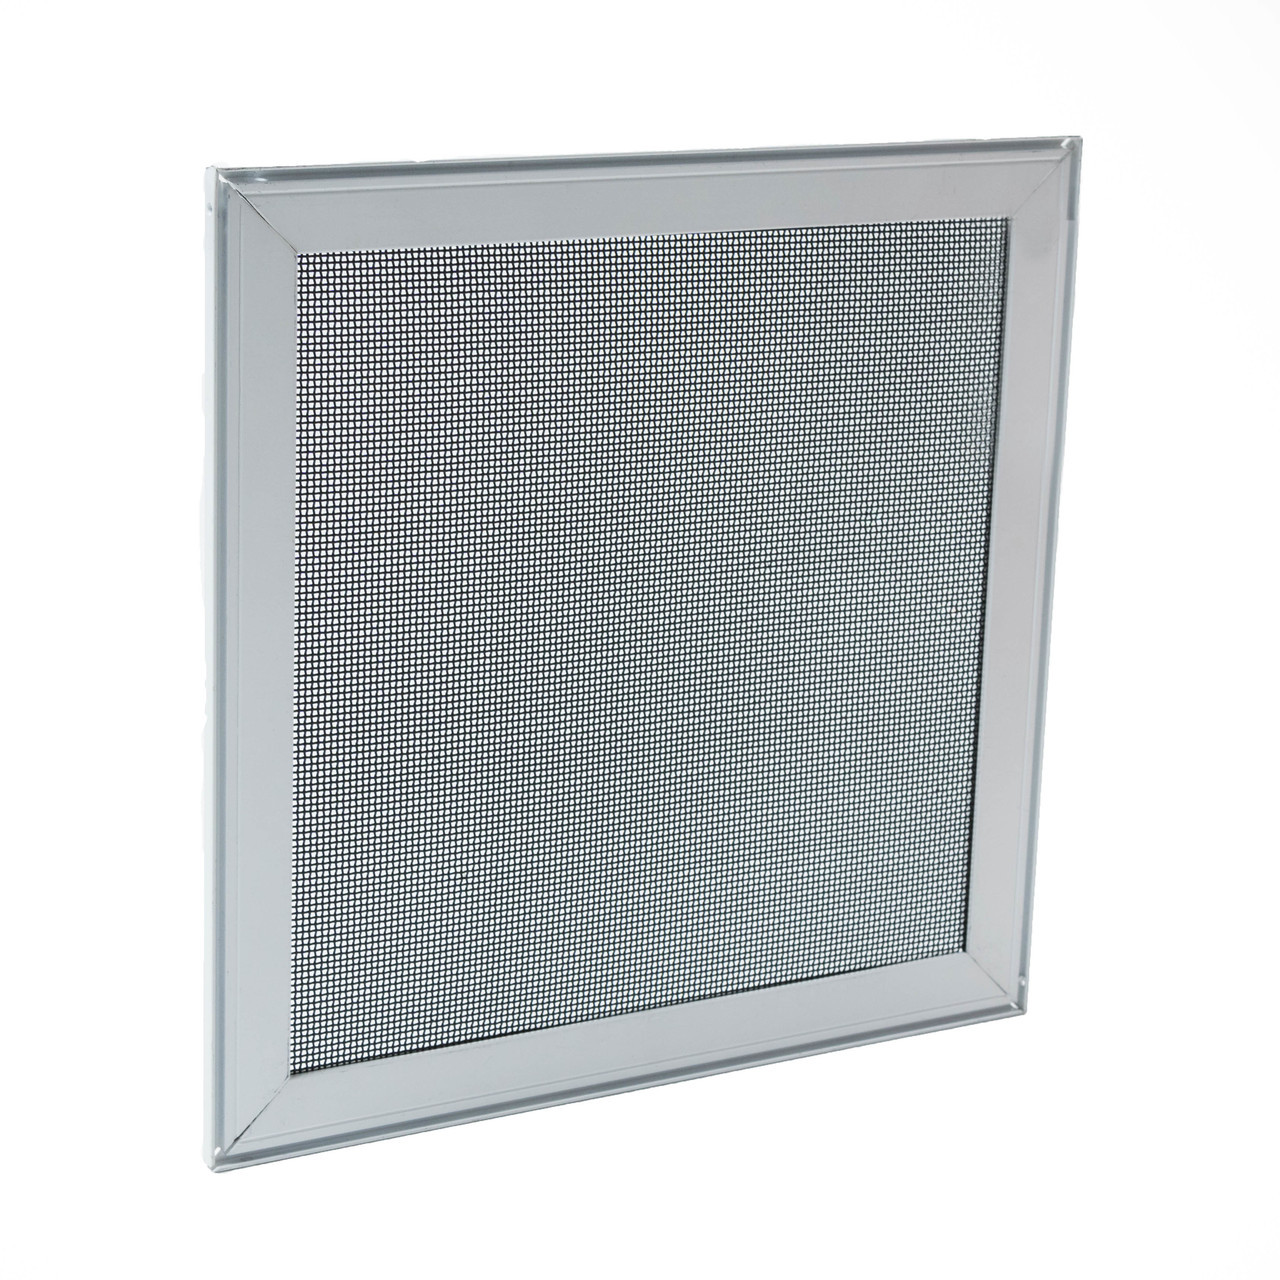 Security Screen Mesh Security Screens Window Security